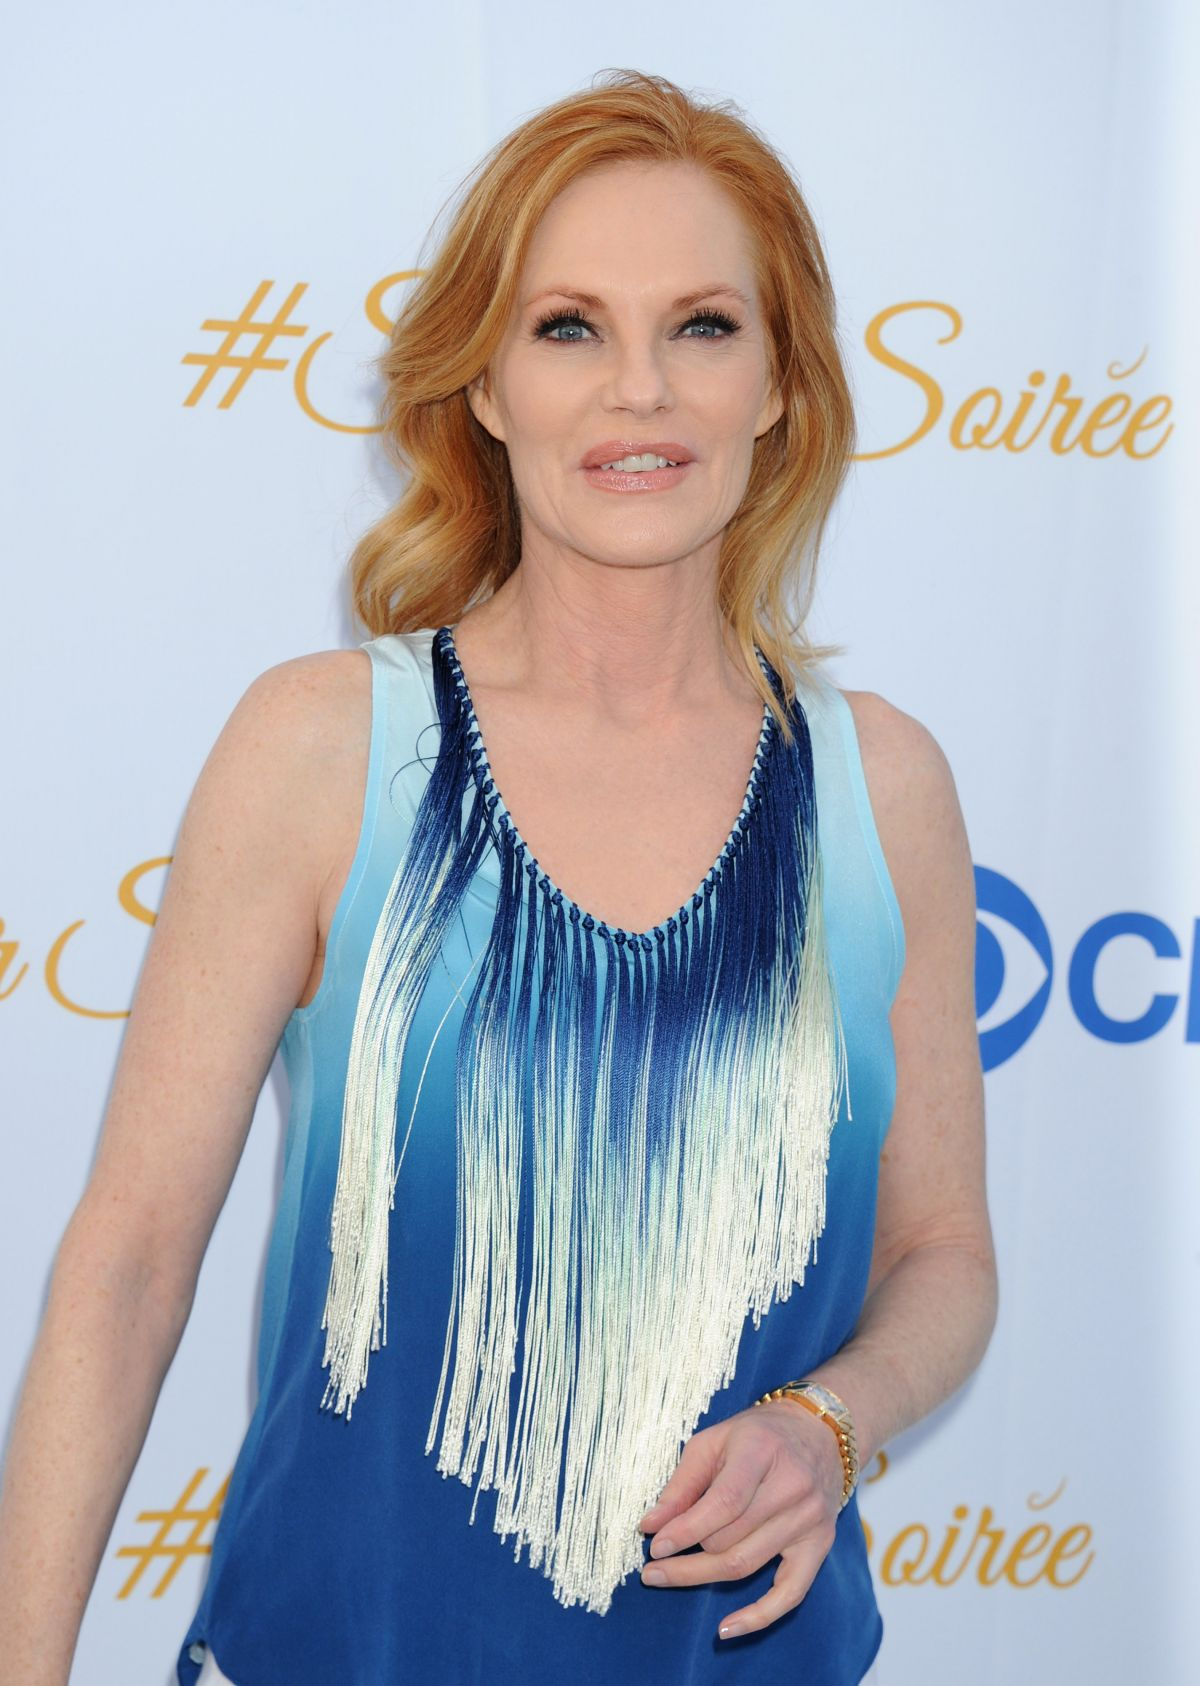 MARG HELGENBERGER at 2015 CBS Summer Soiree in West Hollywood - HawtCelebs